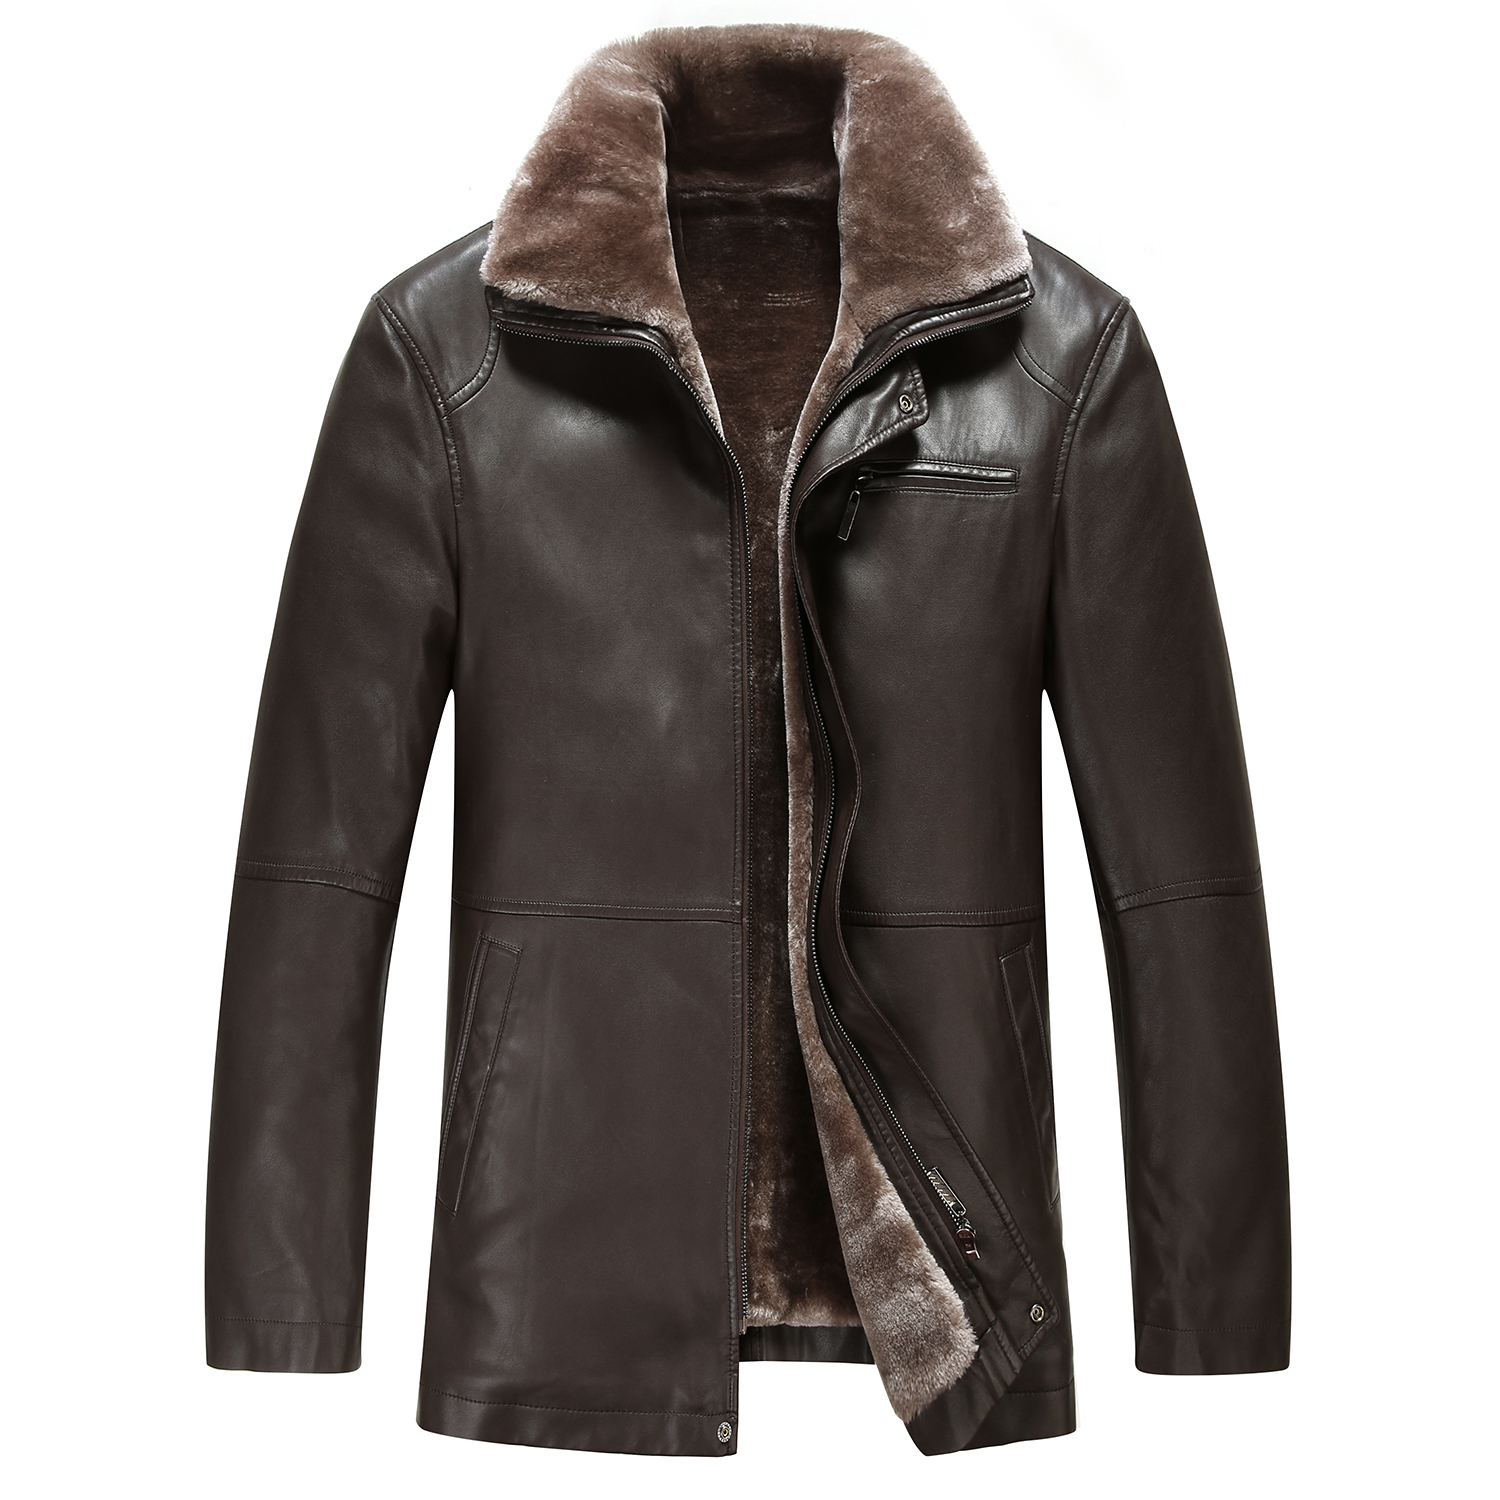 Kaister Jacket Women Leather Lapel Suede Faux Lamb Wool Motorcycle Buckle Cool Pilot Coats